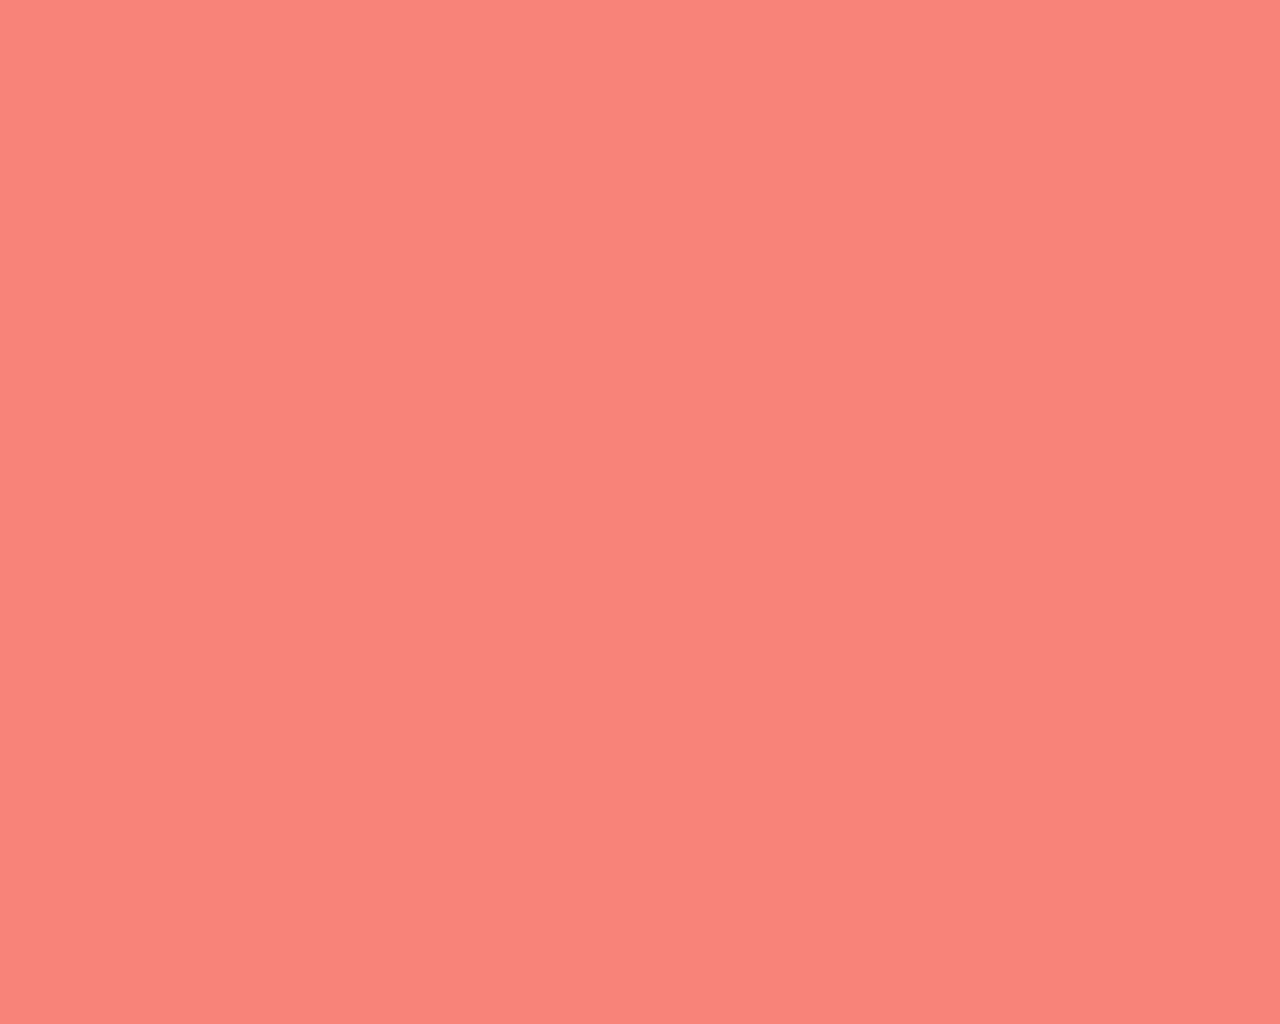 1280x1024 Coral Pink Solid Color Background